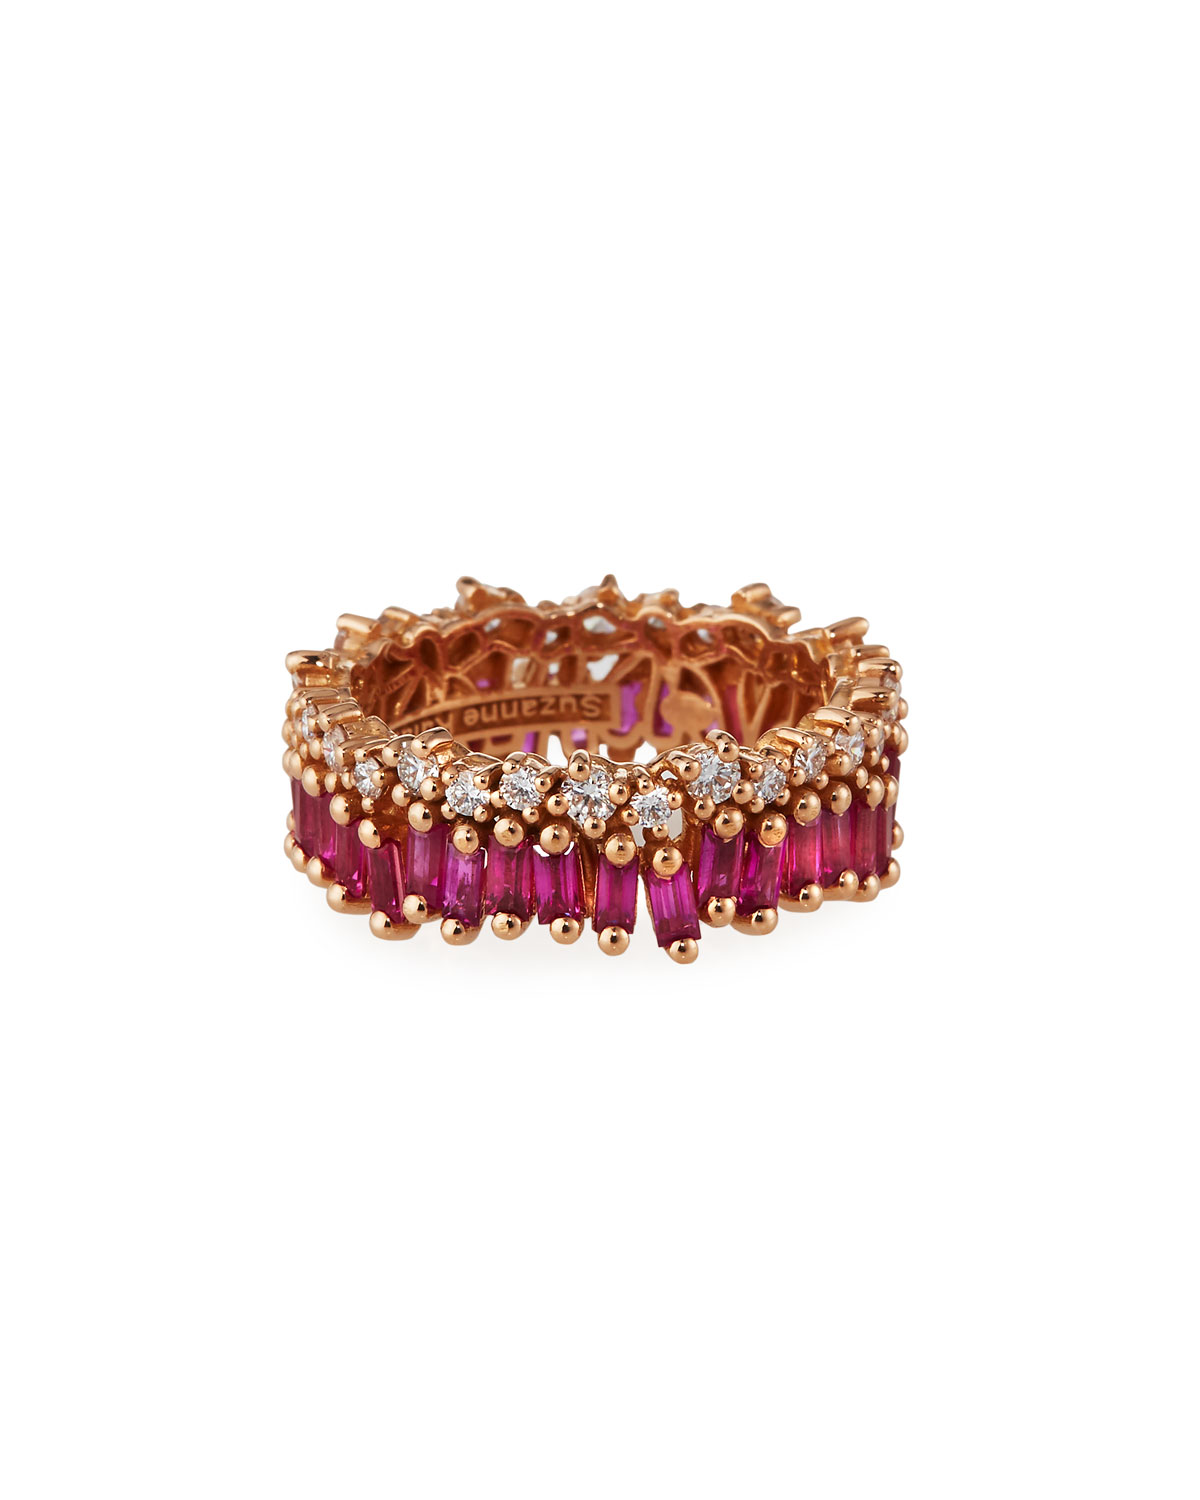 Suzanne Kalan 18k Rose Gold Ruby Eternity Ring